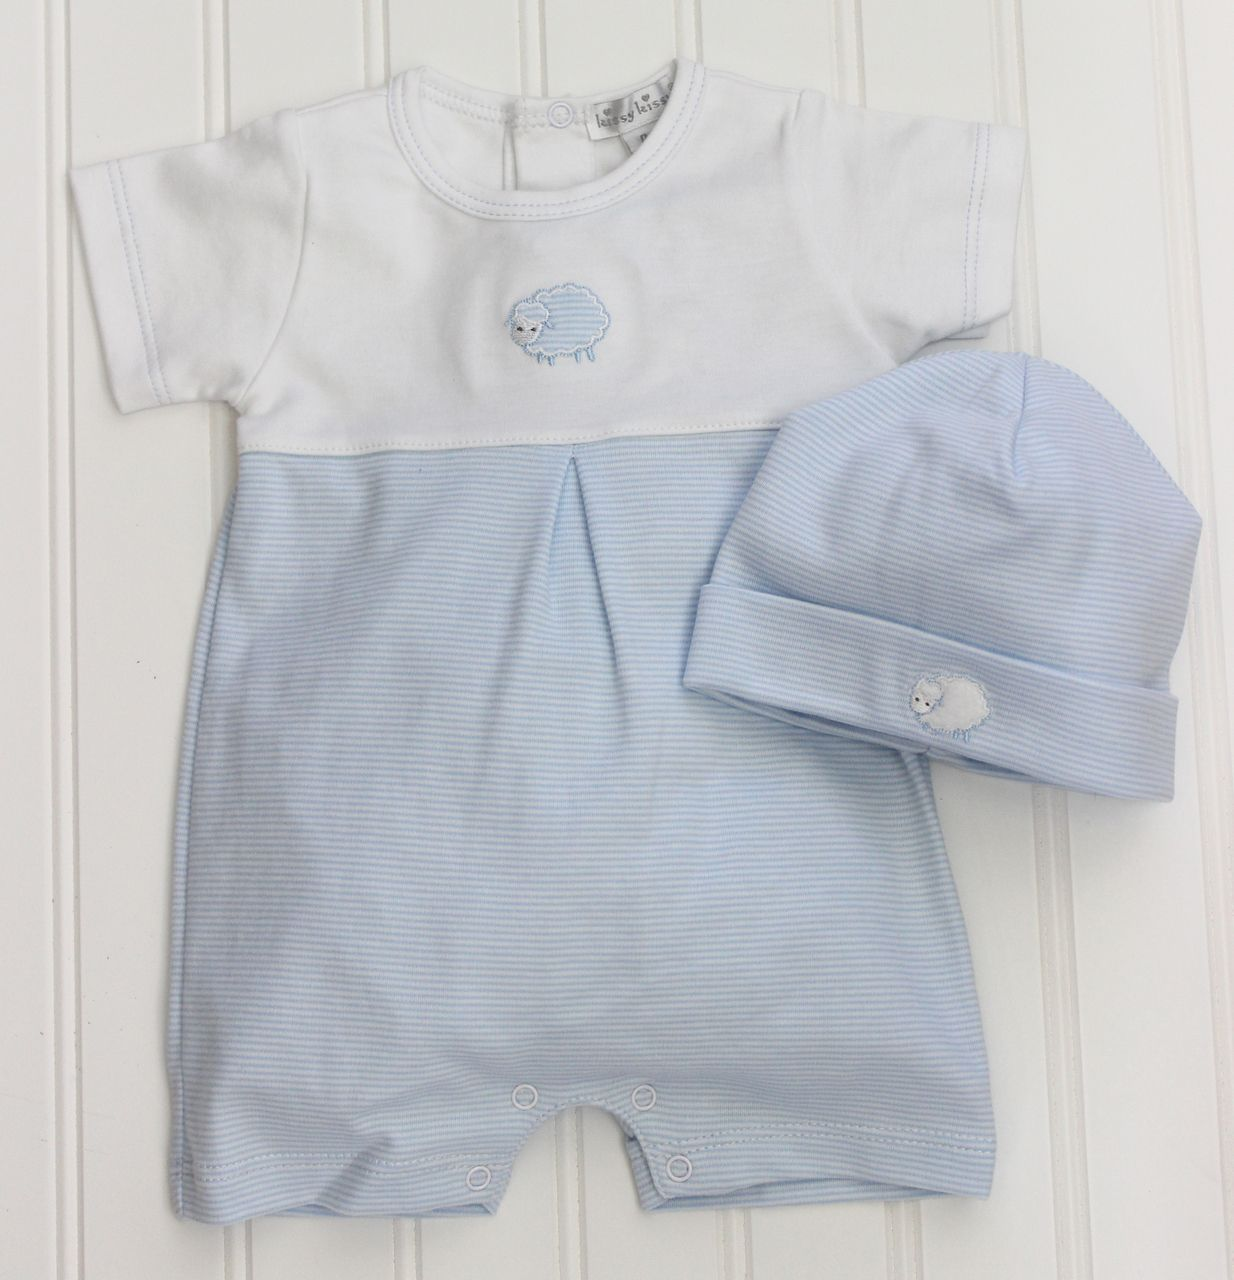 Boys Blue Dressy Romper Take Home Outfit